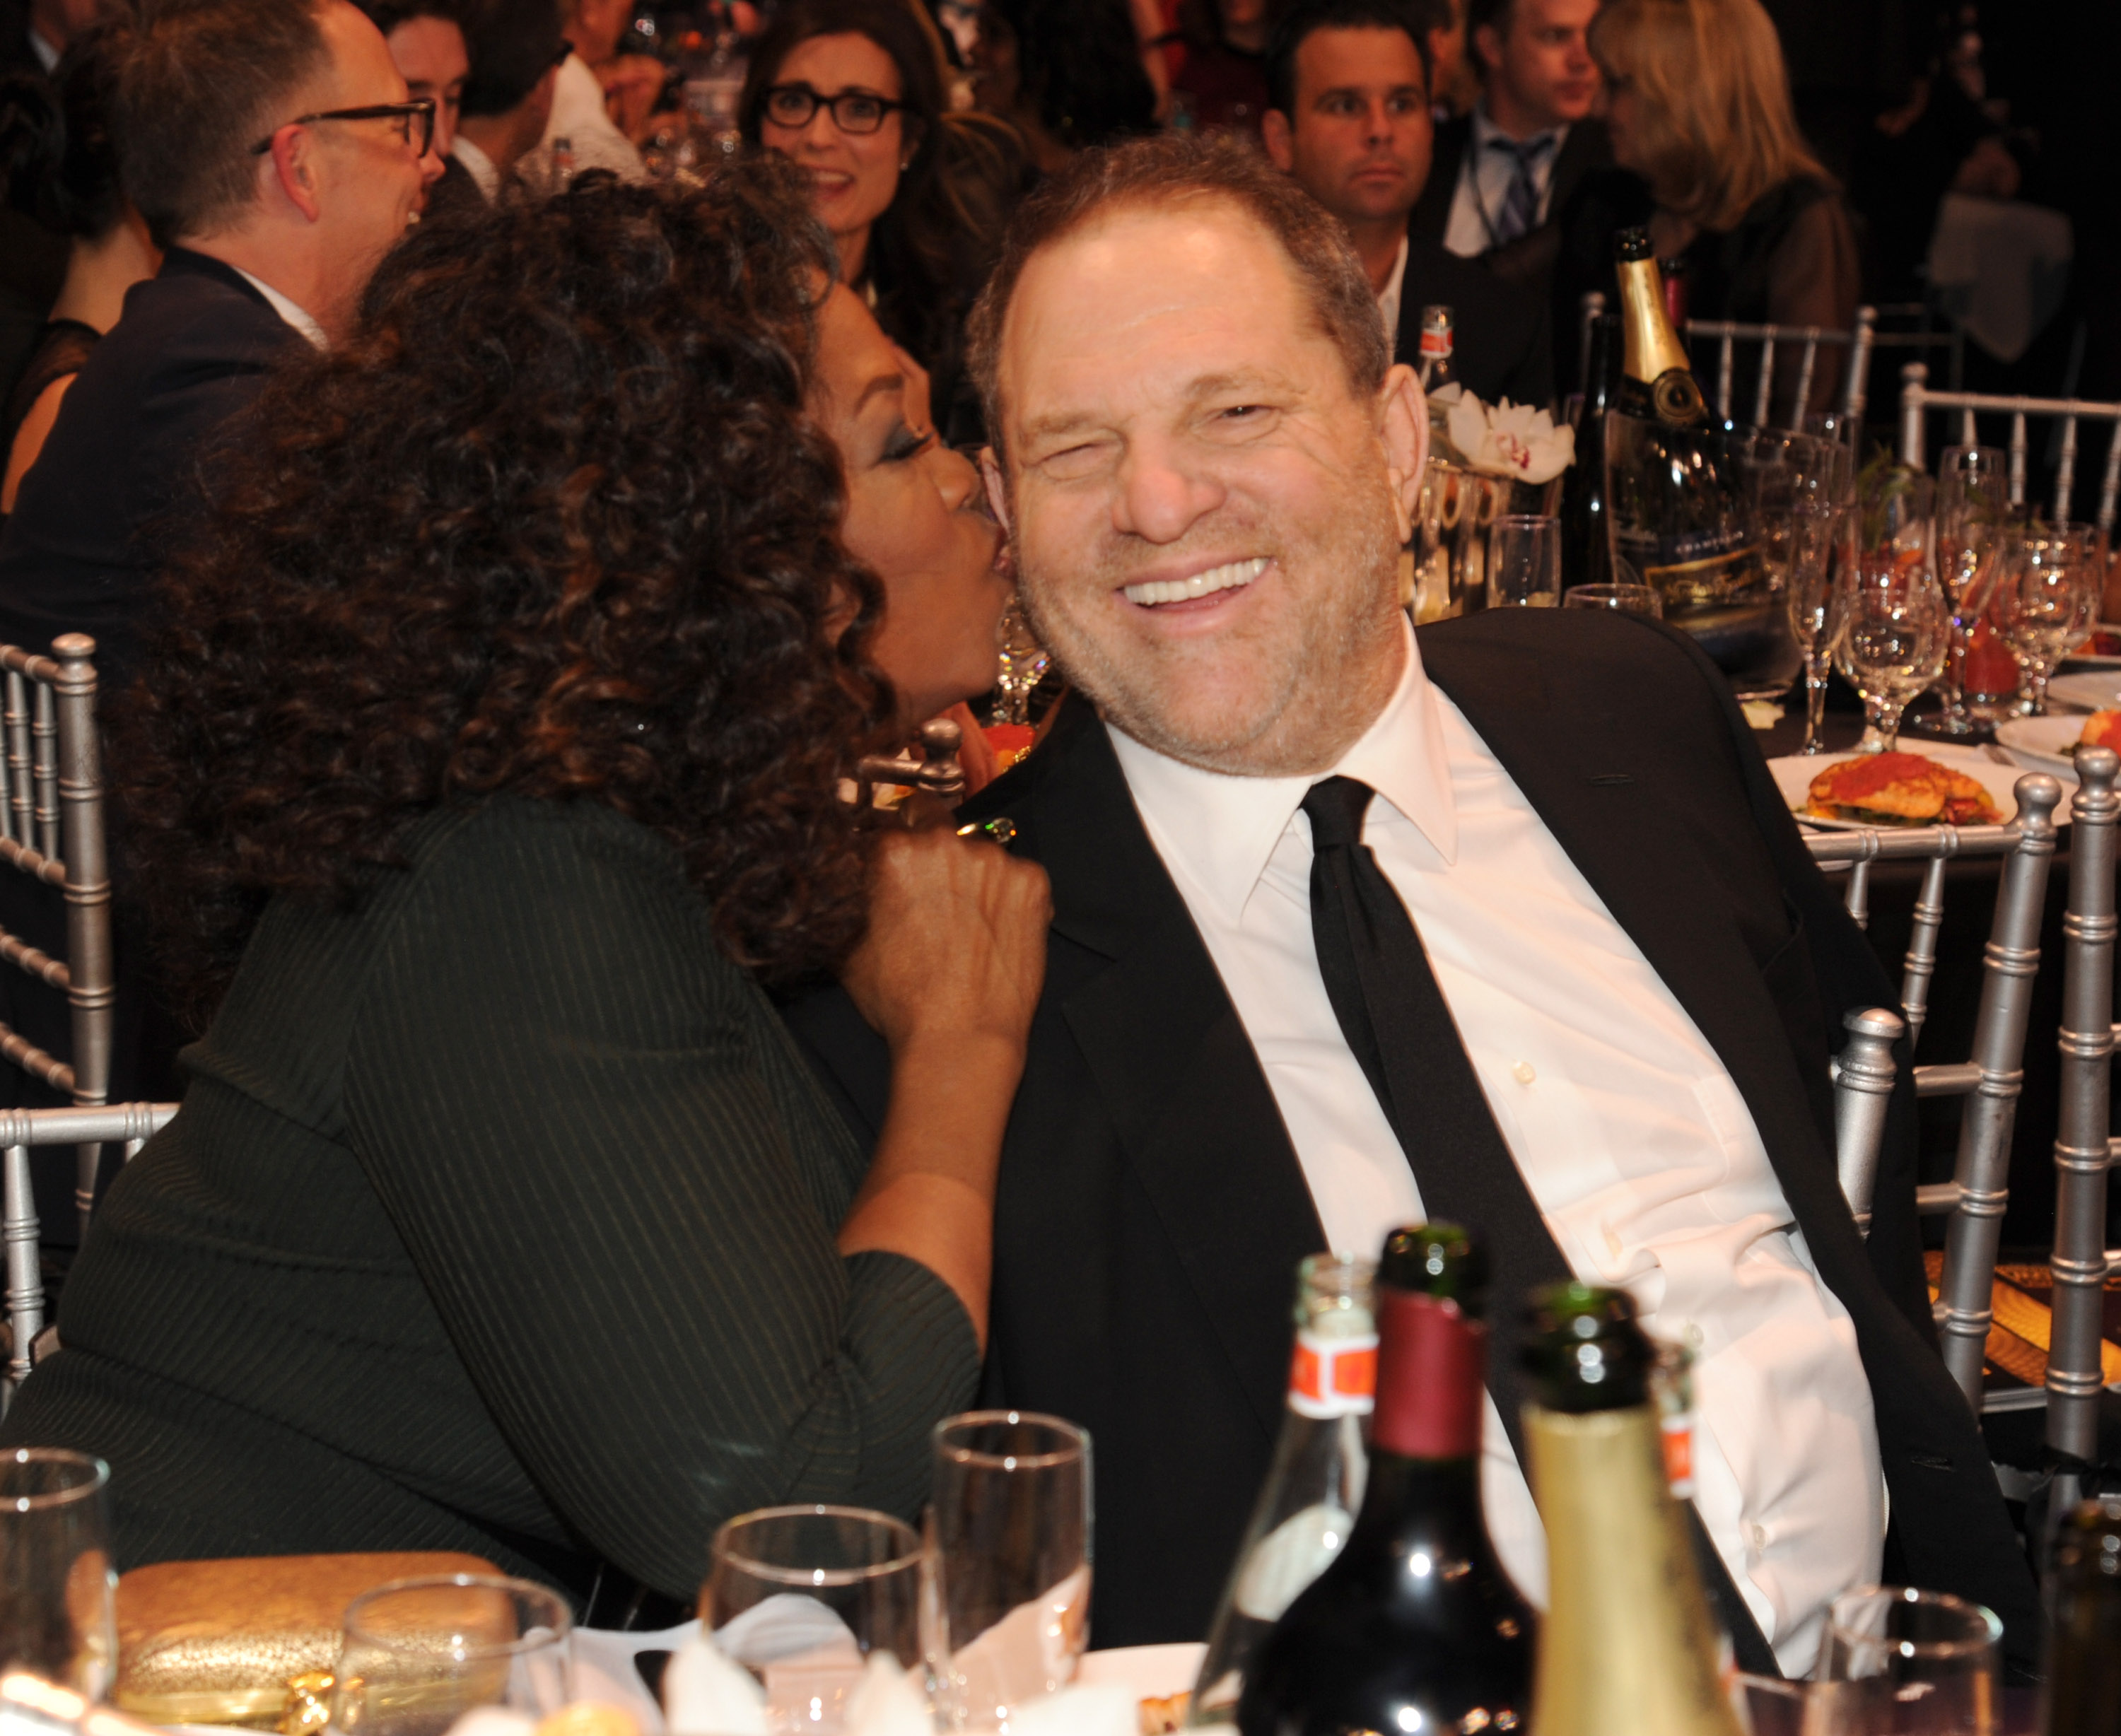 Oprah Winfrey and Harvey Weinstein attend the19th Annual Critics' Choice Movie Awards at Barker Hangar on January 16, 2014 in Santa Monica, California.